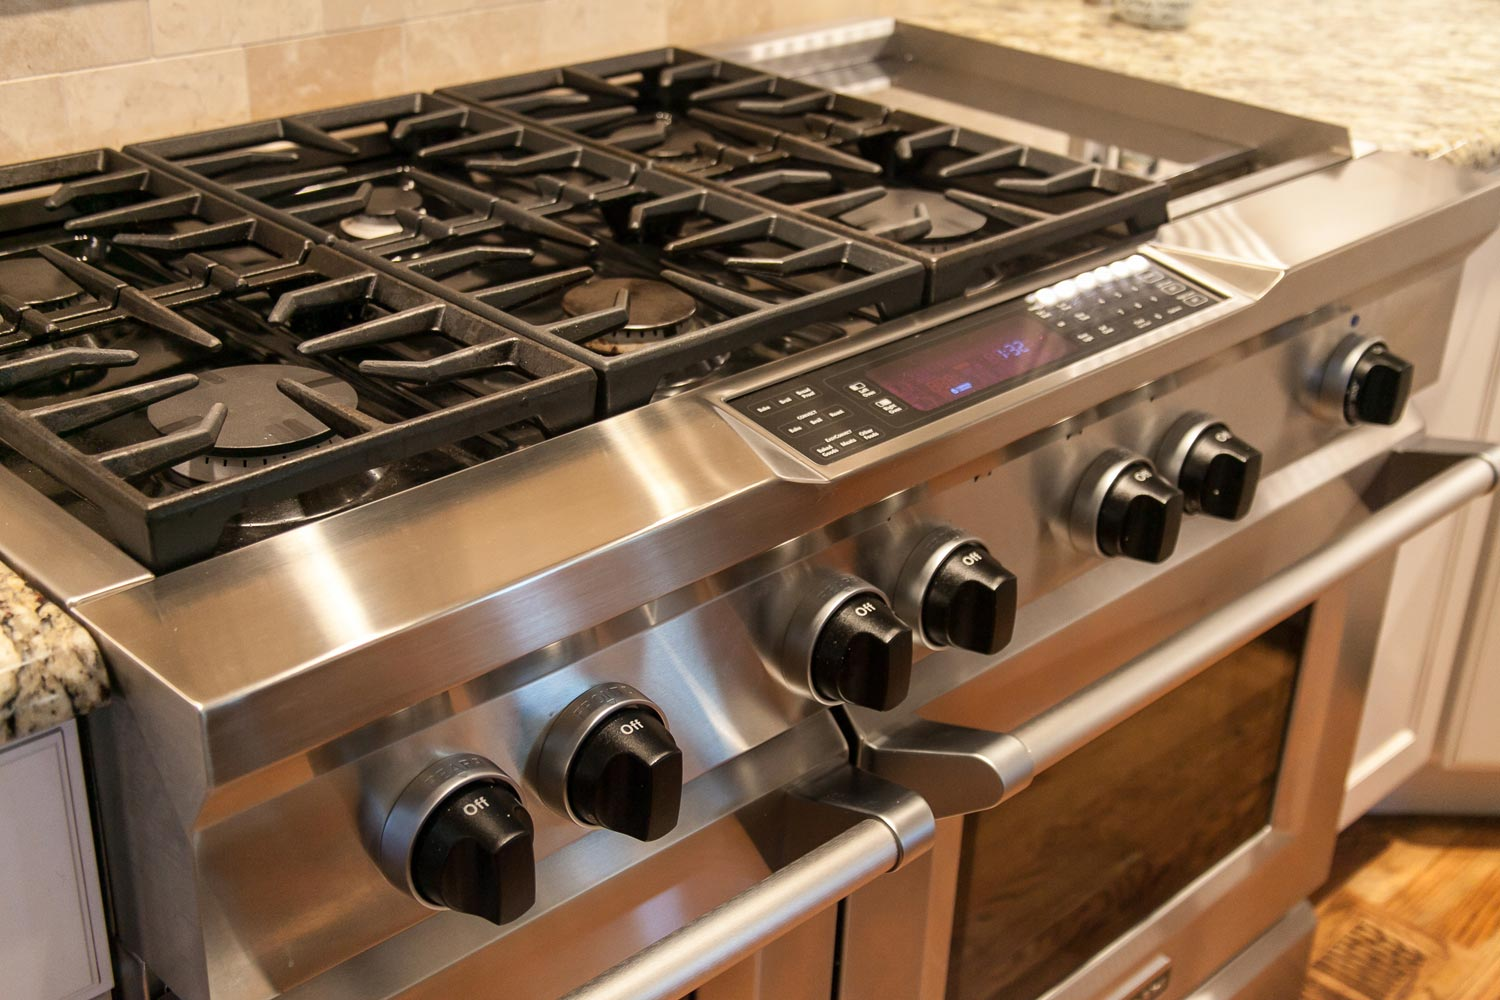 stainless steel 6 burner gas stove